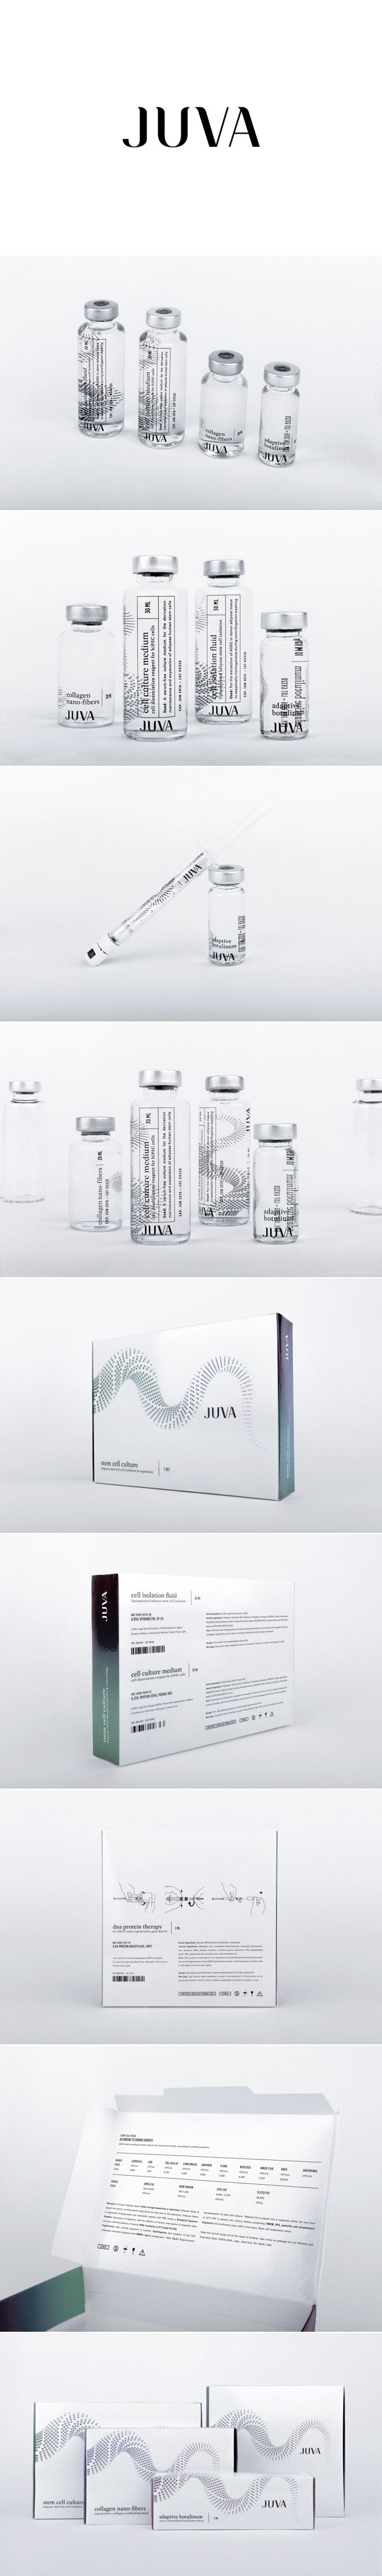 JUVA Pharmaceutical Packaging Concepts.